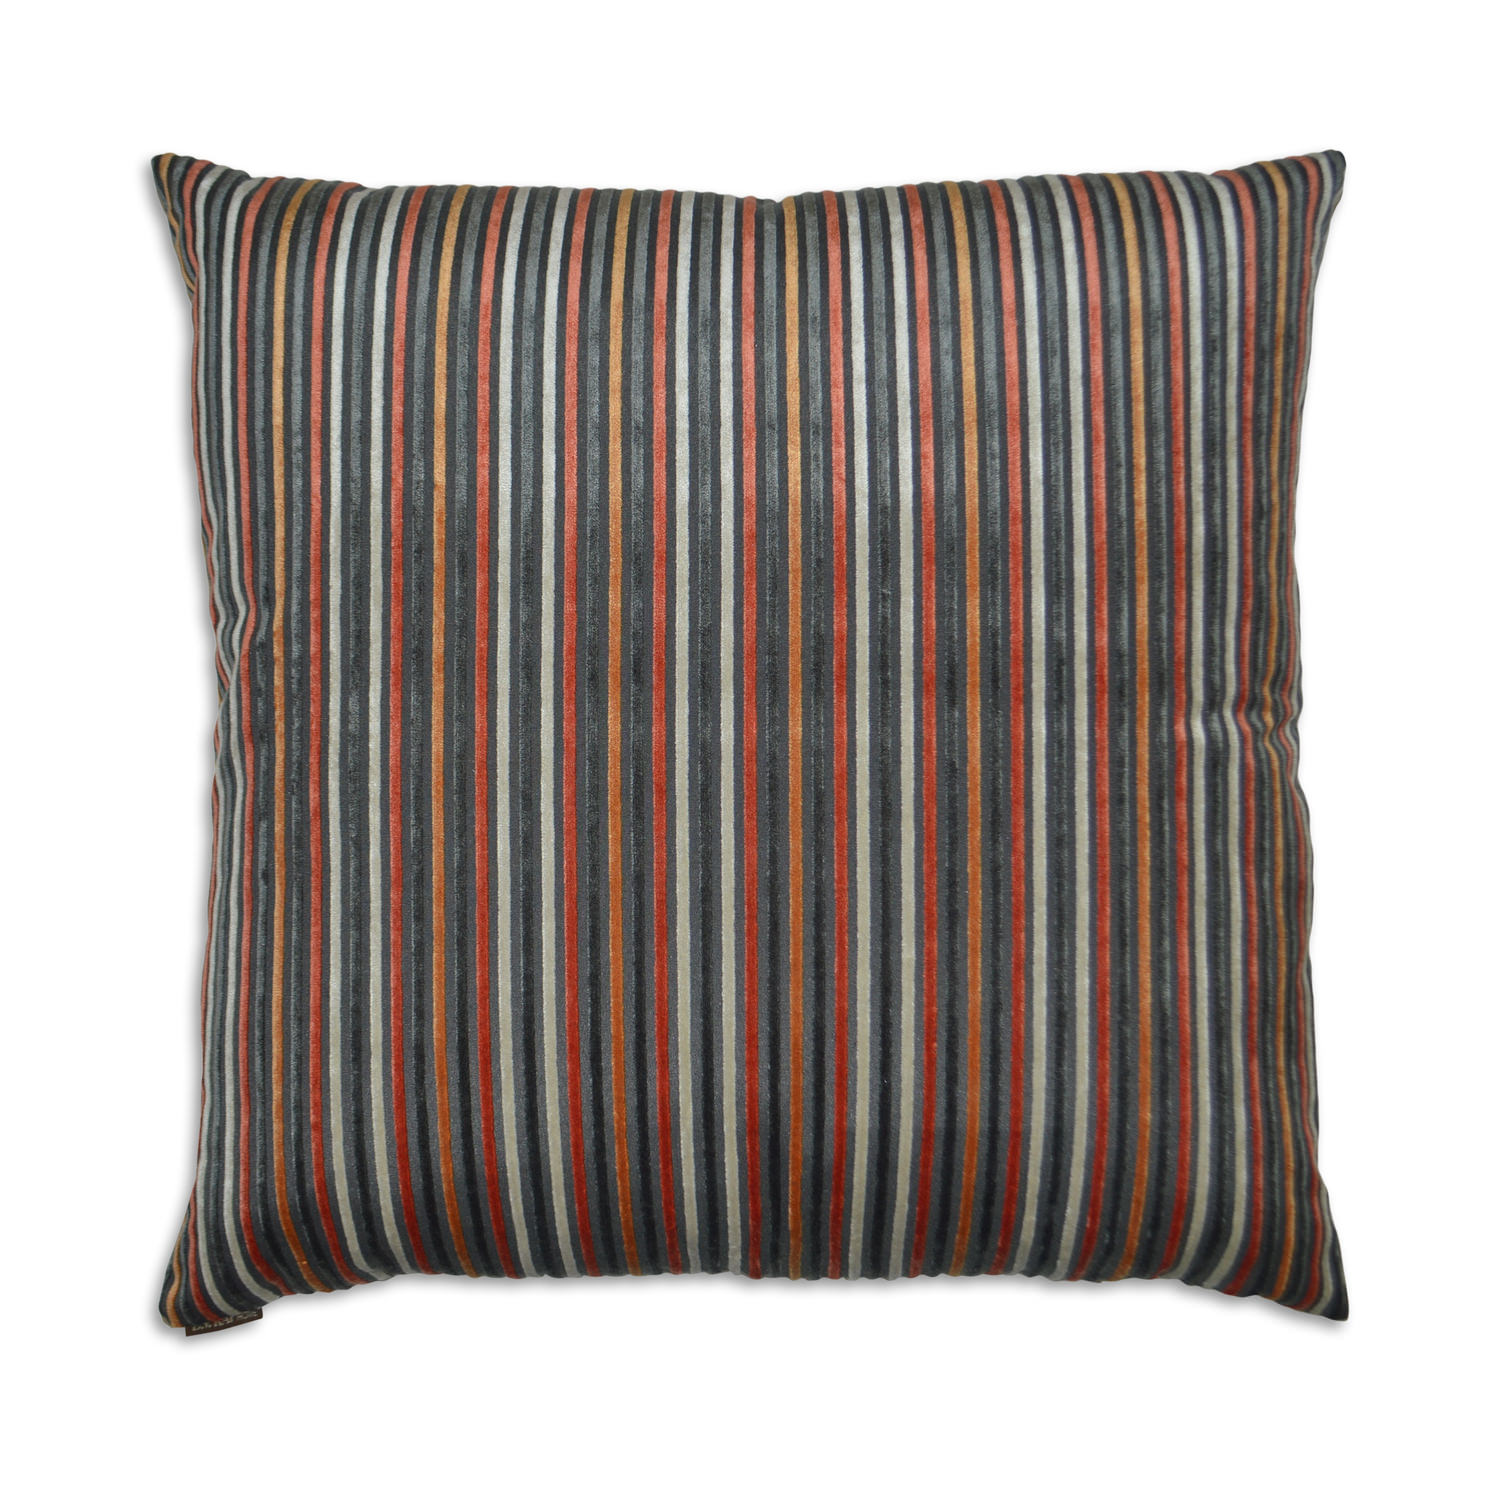 Park Place Pillow : HOM Furniture : Furniture Stores in Minneapolis Minnesota u0026 Midwest